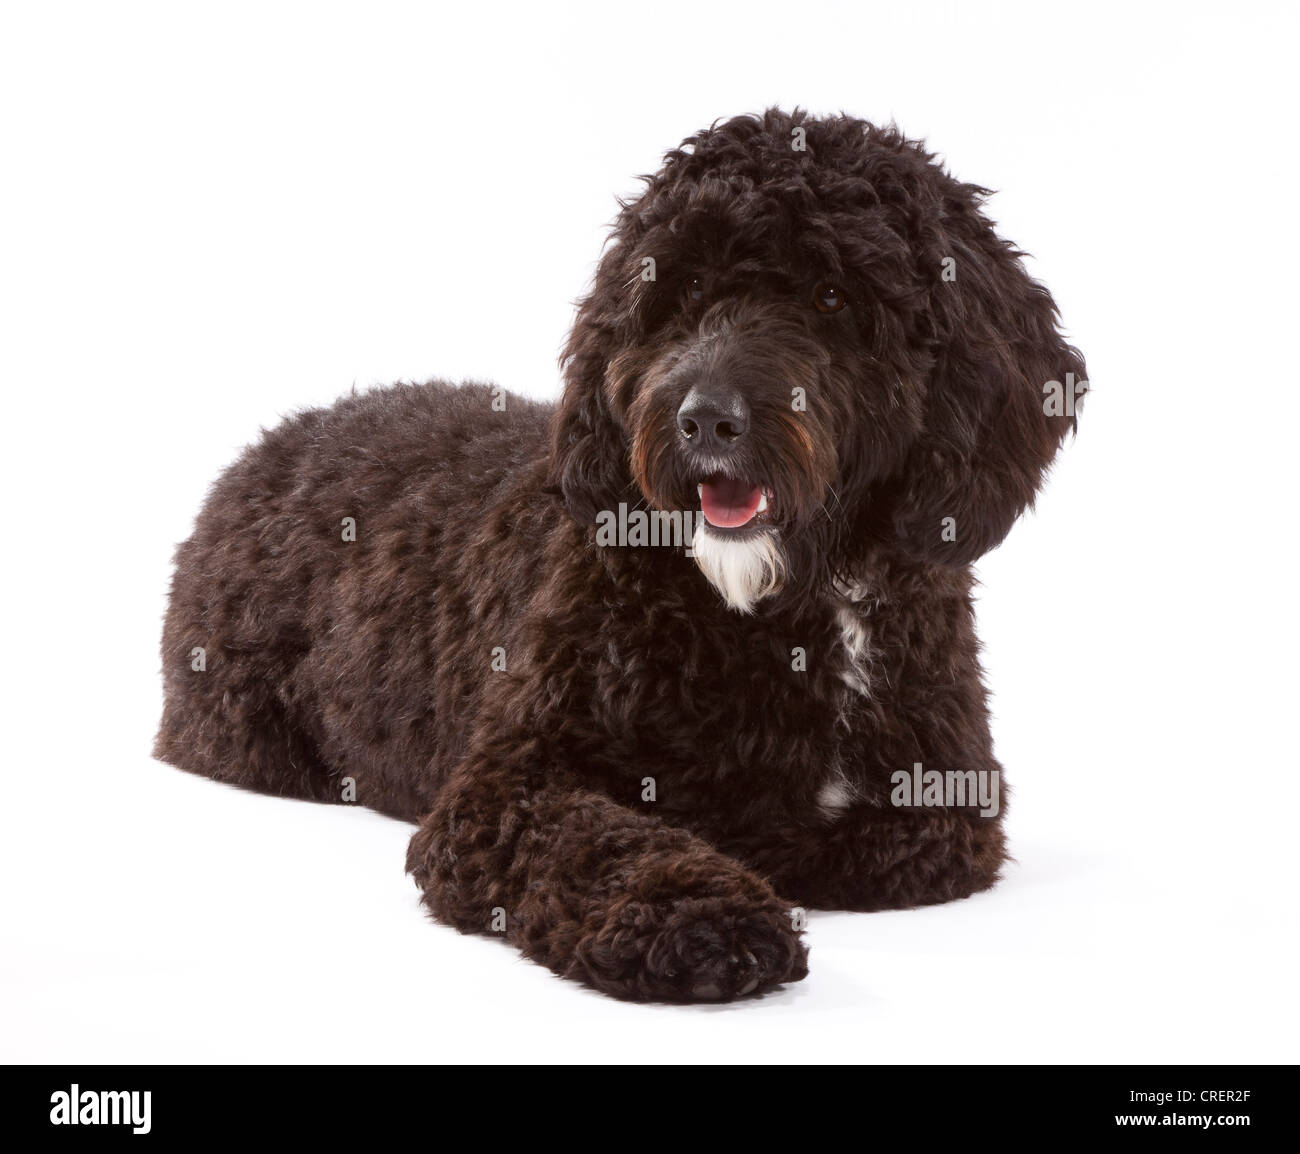 Cockerpoo male dog at 1 year old. Cross between a Cocker Spaniel and a Poodle. Stock Photo